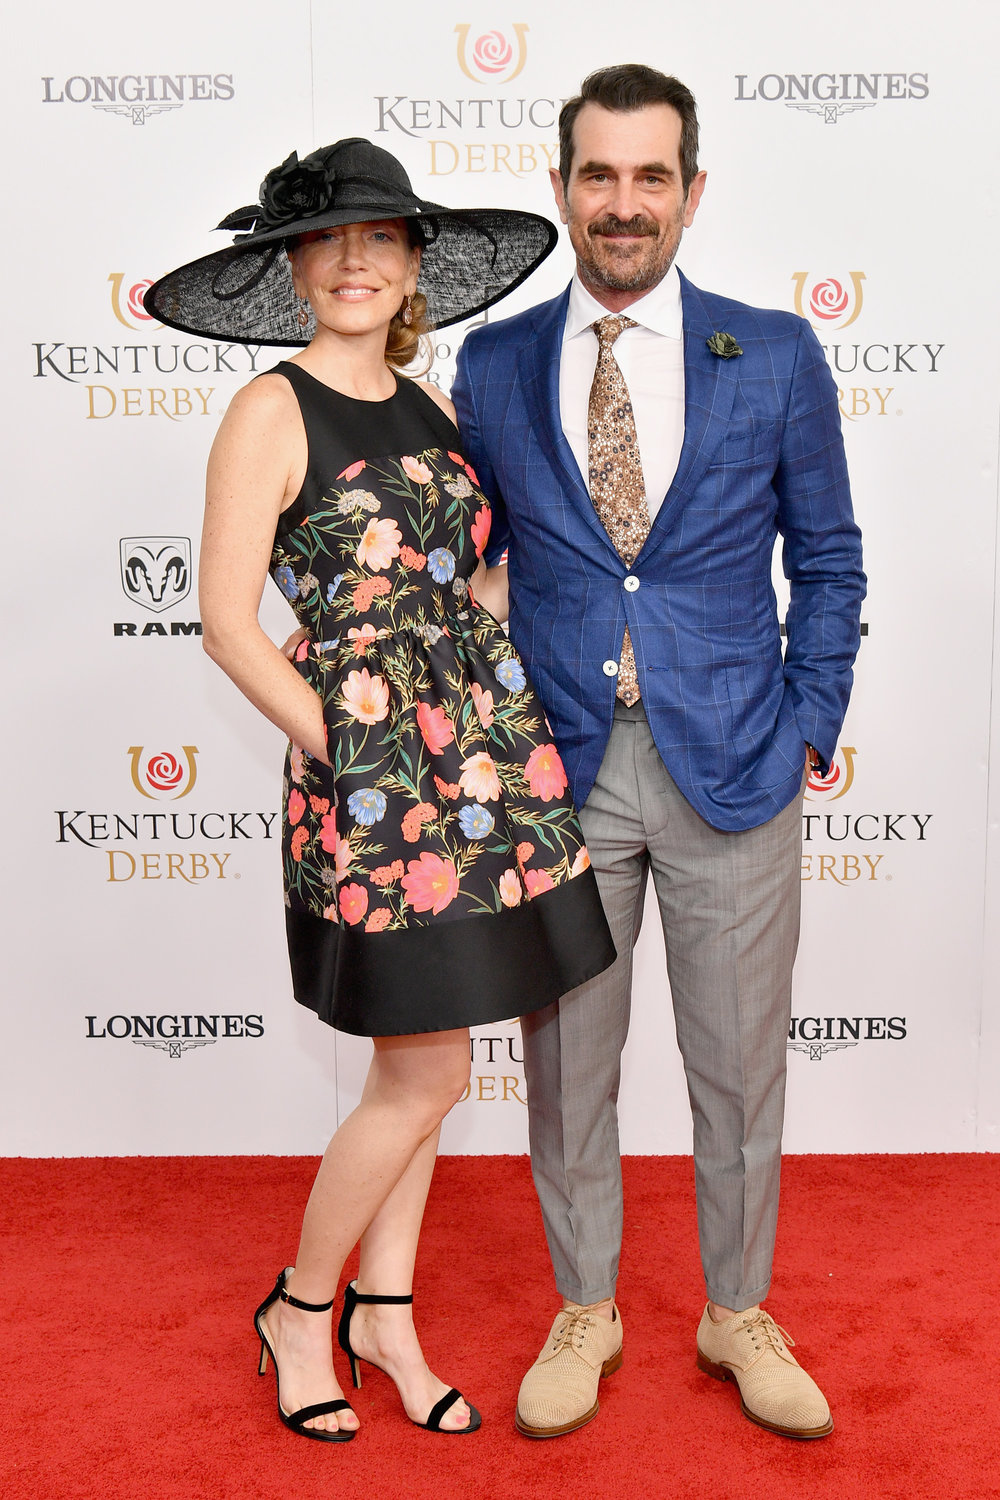 LOUISVILLE, KY - MAY 05: Actor Ty Burrell (R) and Holly Burrell attend Kentucky Derby 144 on May 5, 2018 in Louisville, Kentucky.  (Photo by Dia Dipasupil/Getty Images for Chruchill Downs) *** Local Caption *** Ty Burrell;Holly Burrell